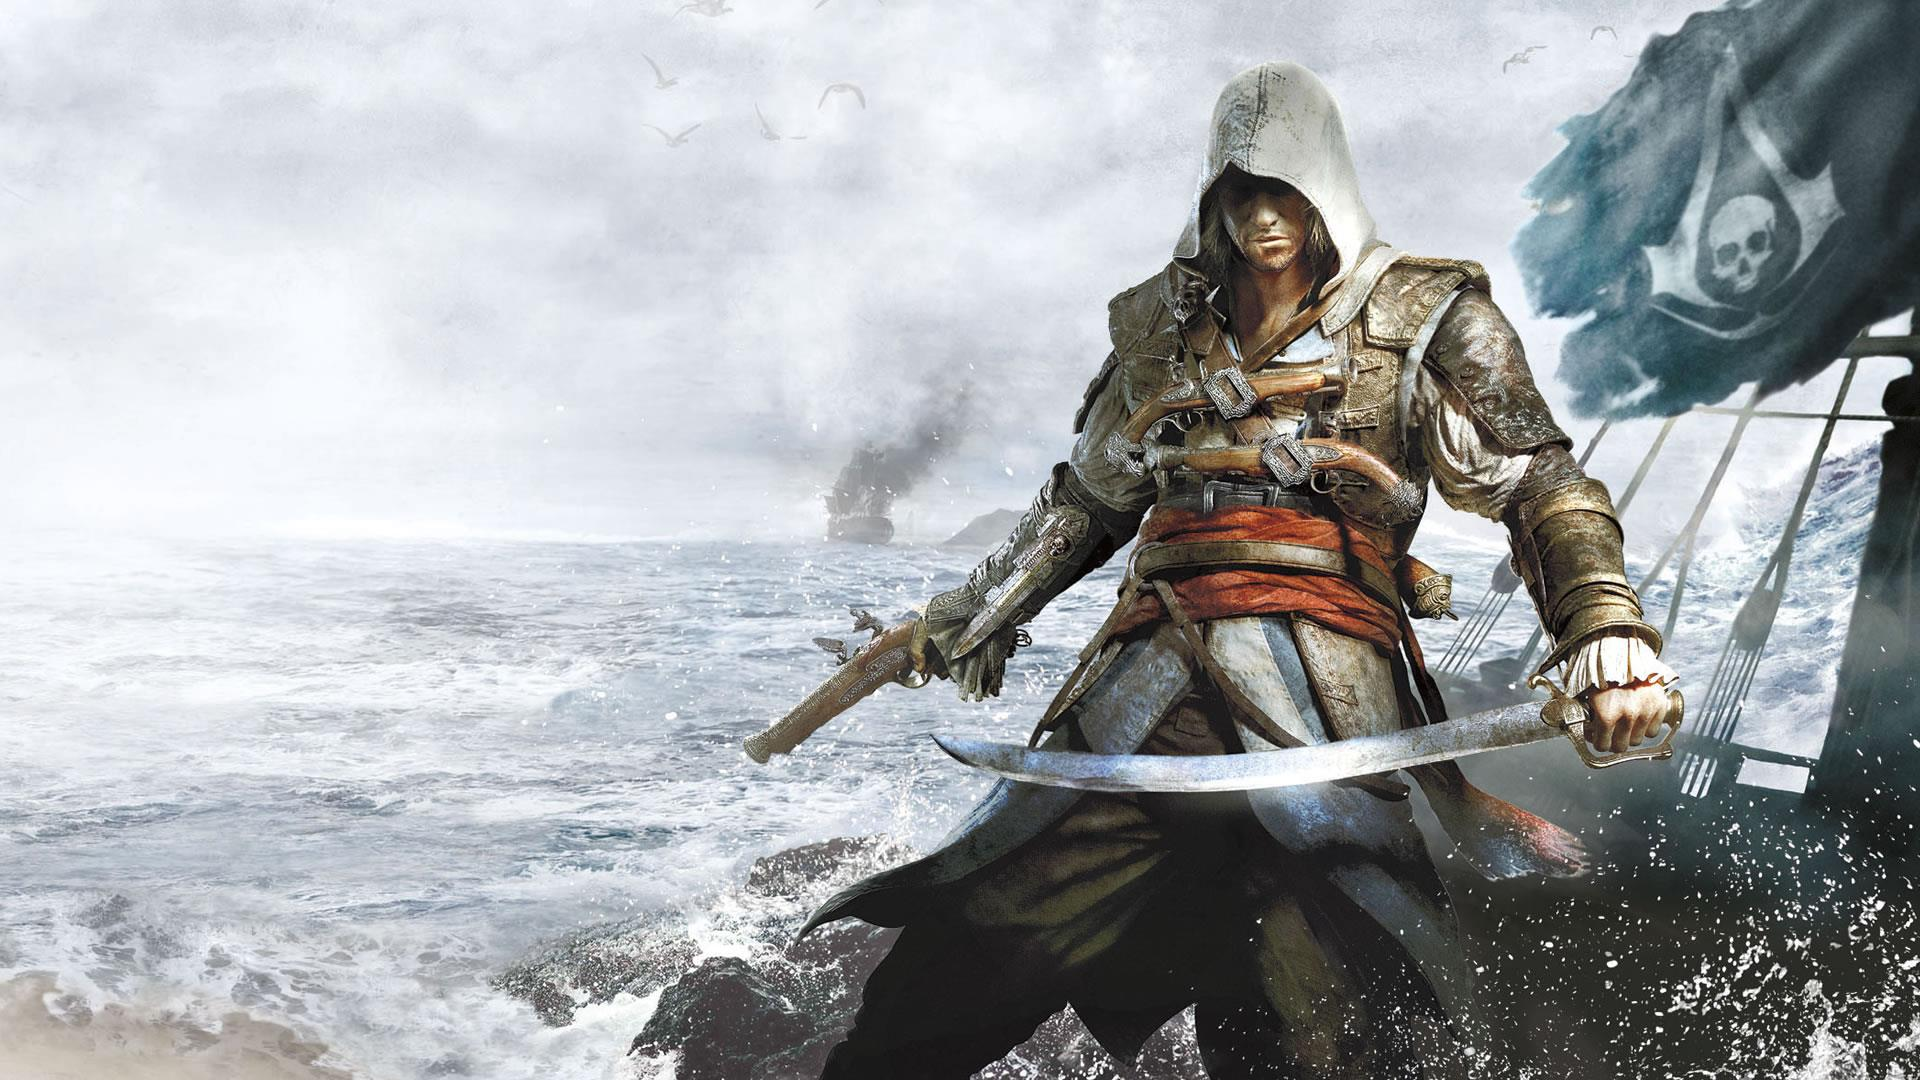 Assassin S Creed 4 Wallpaper Hd Video Games Blogger